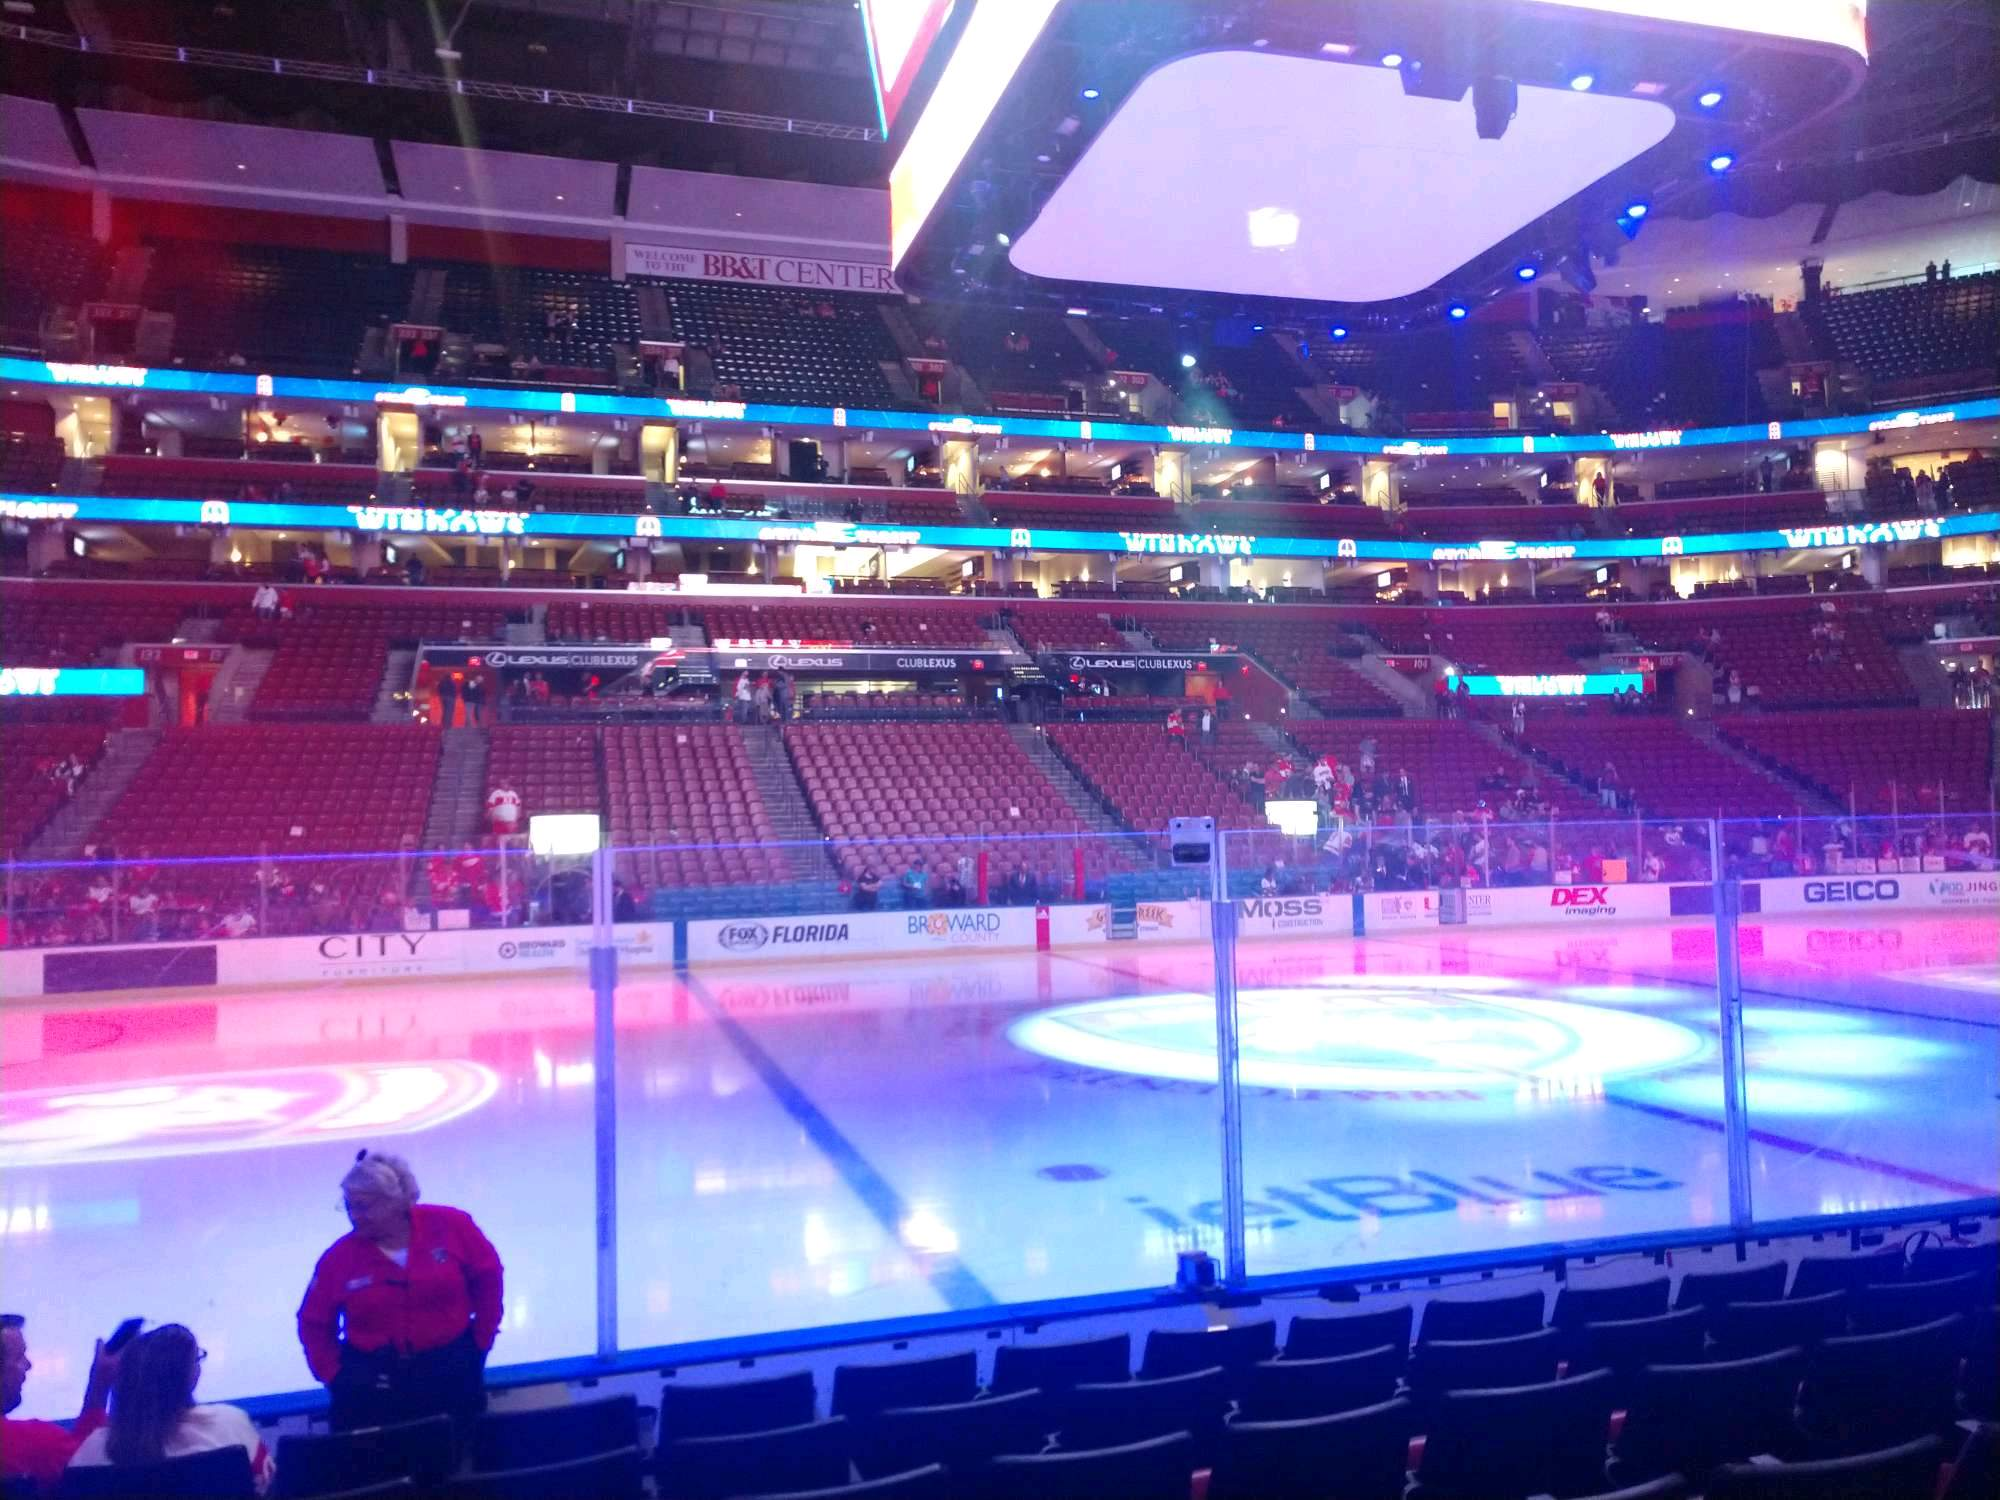 BB&T Center Section 119 Row 7 Seat 11